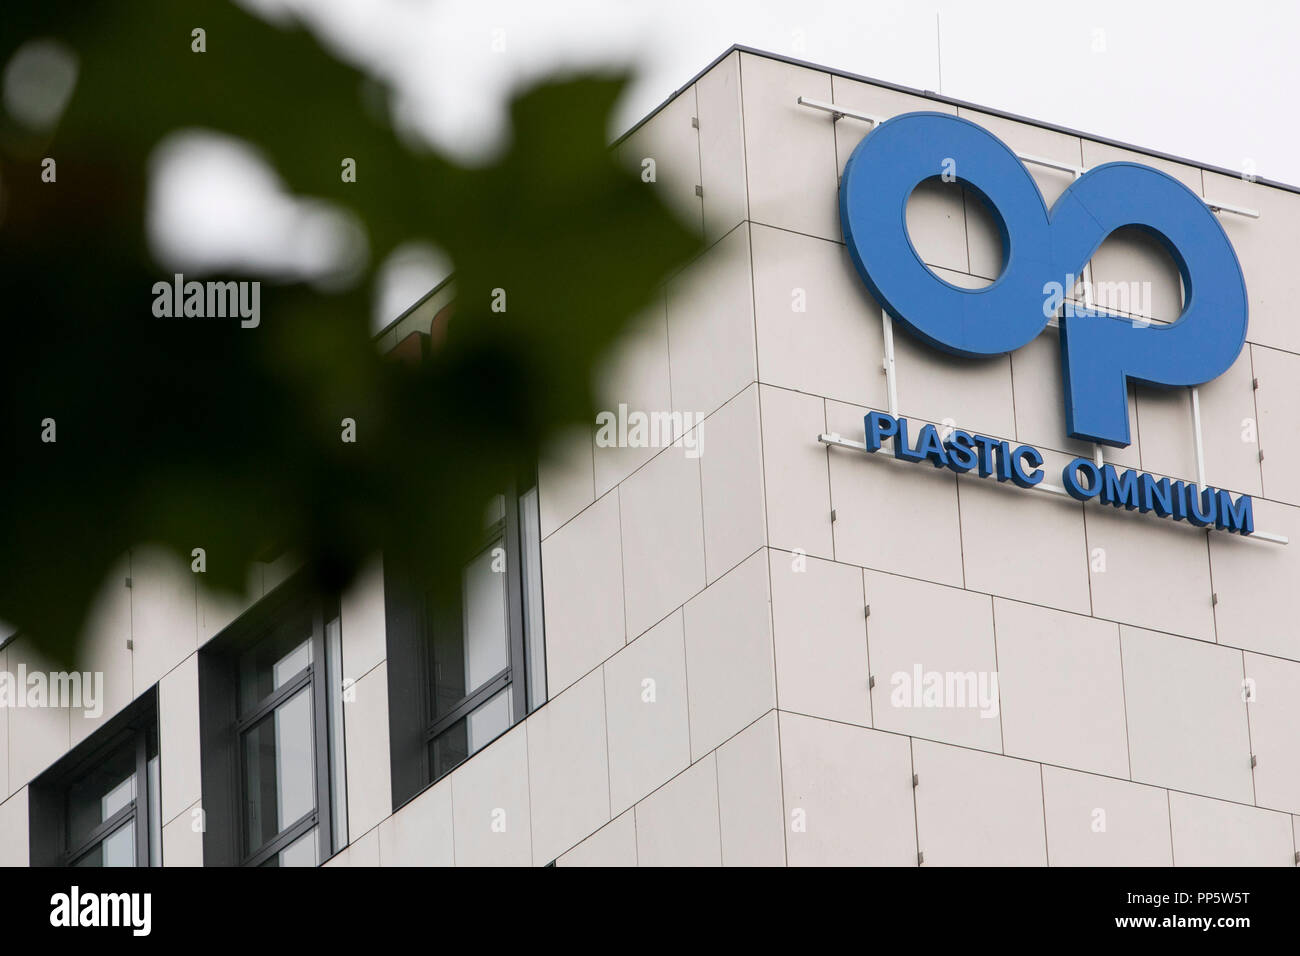 A logo sign outside of a facility occupied by Plastic Omnium in Munich, Germany, on August 31, 2018. - Stock Image